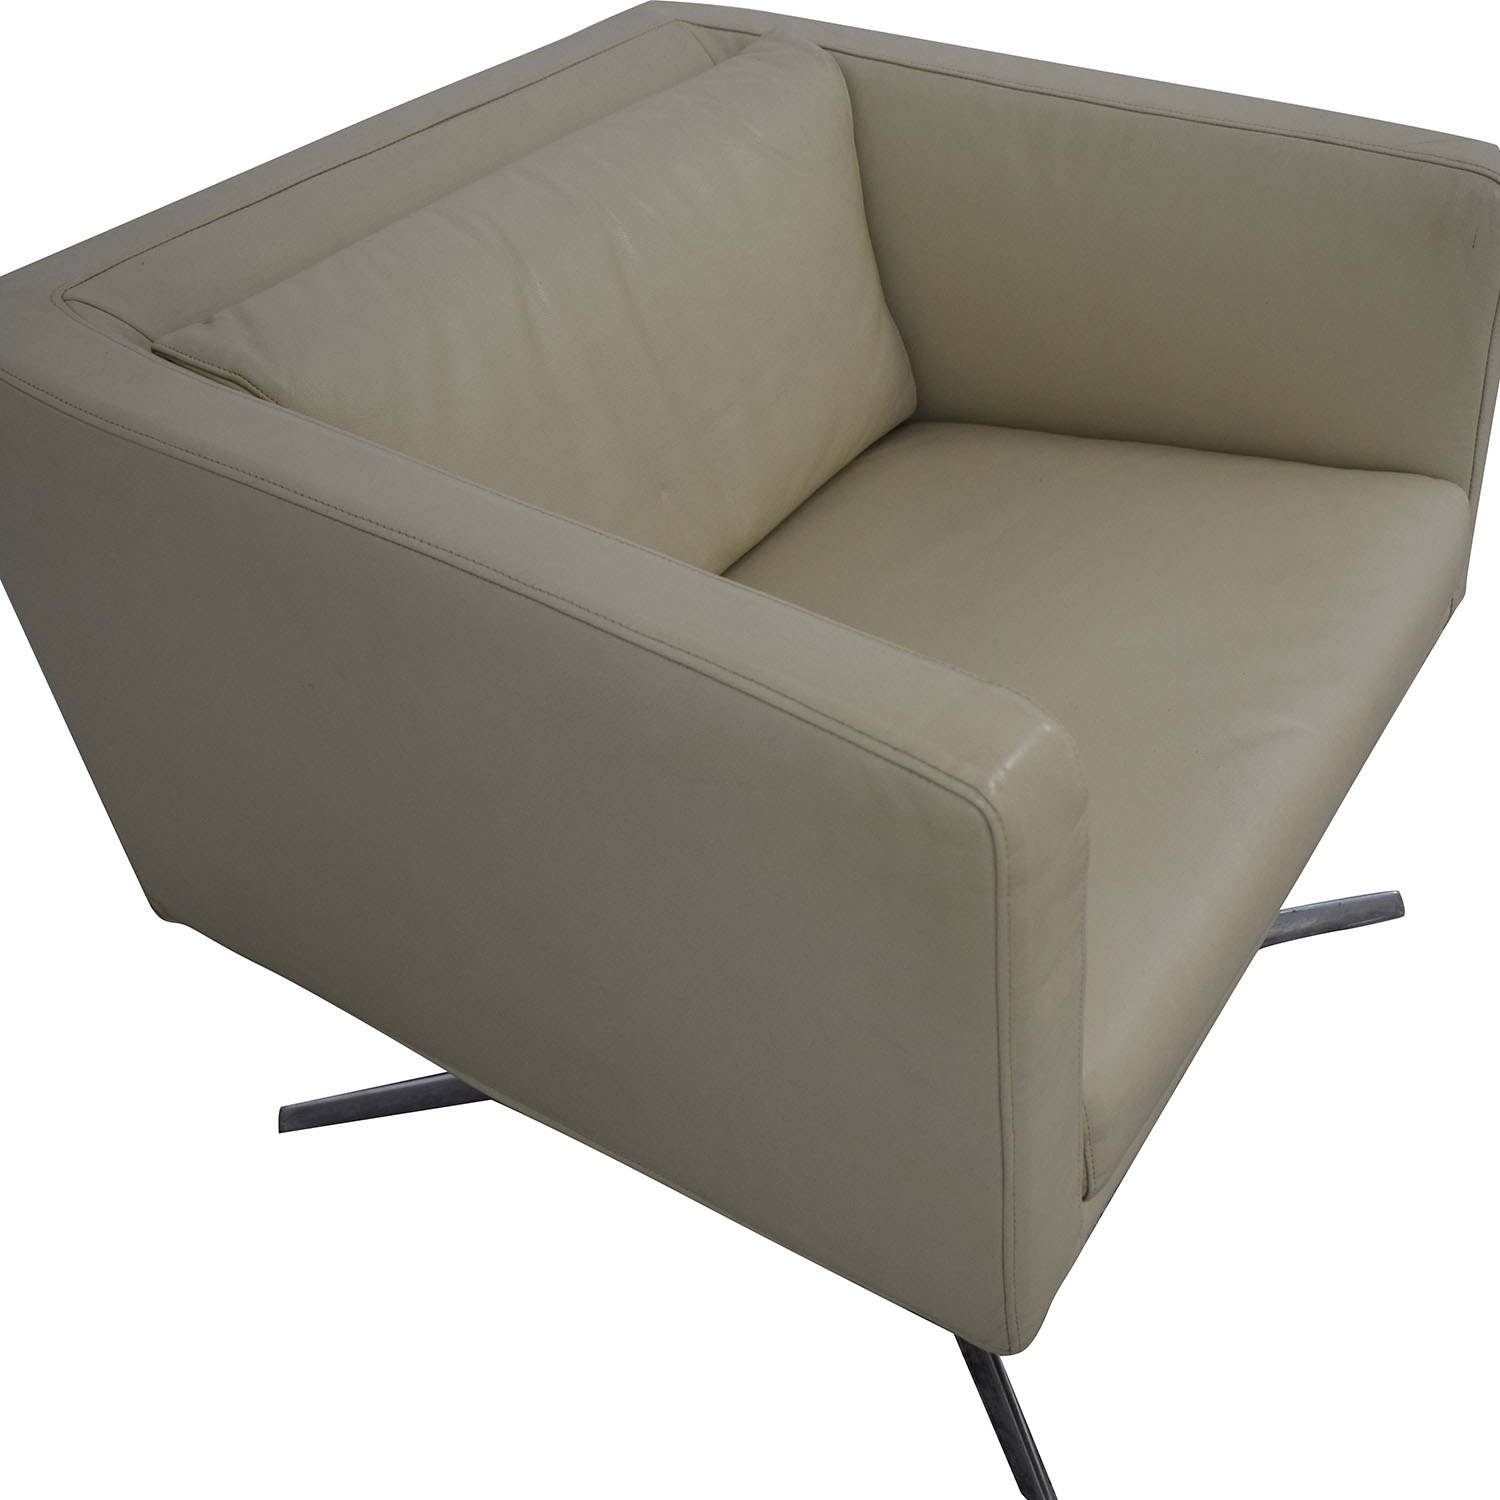 Verzelloni Verzelloni Cubica Armchair for sale